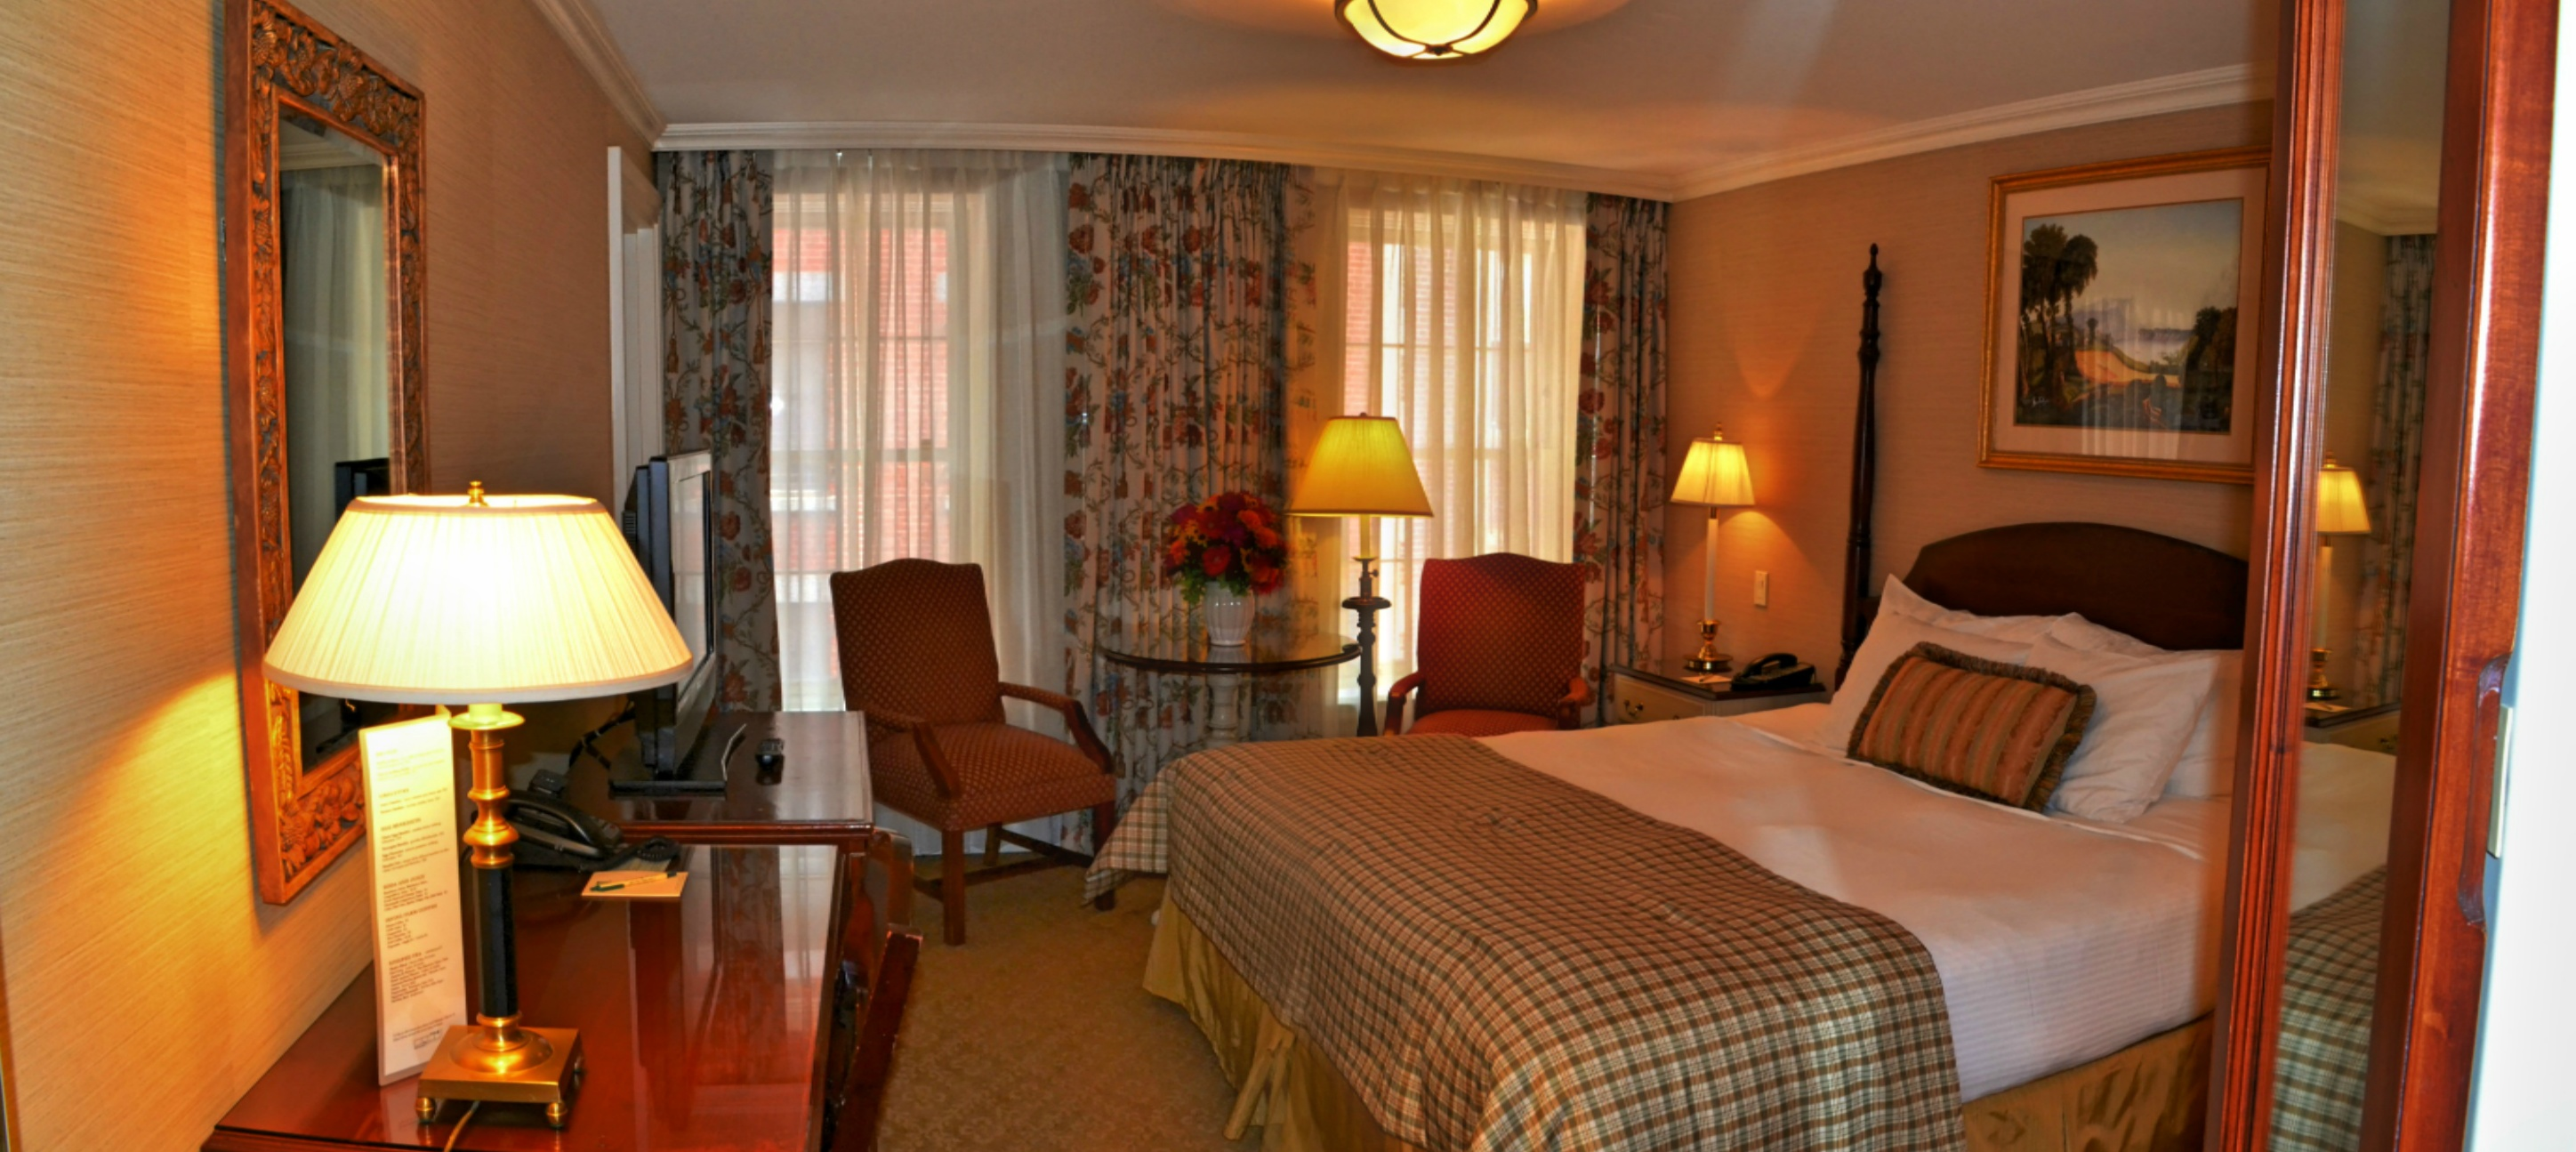 https://www.hotelsbyday.com/_data/default-hotel_image/1/8502/408-hdr-panorama.jpg